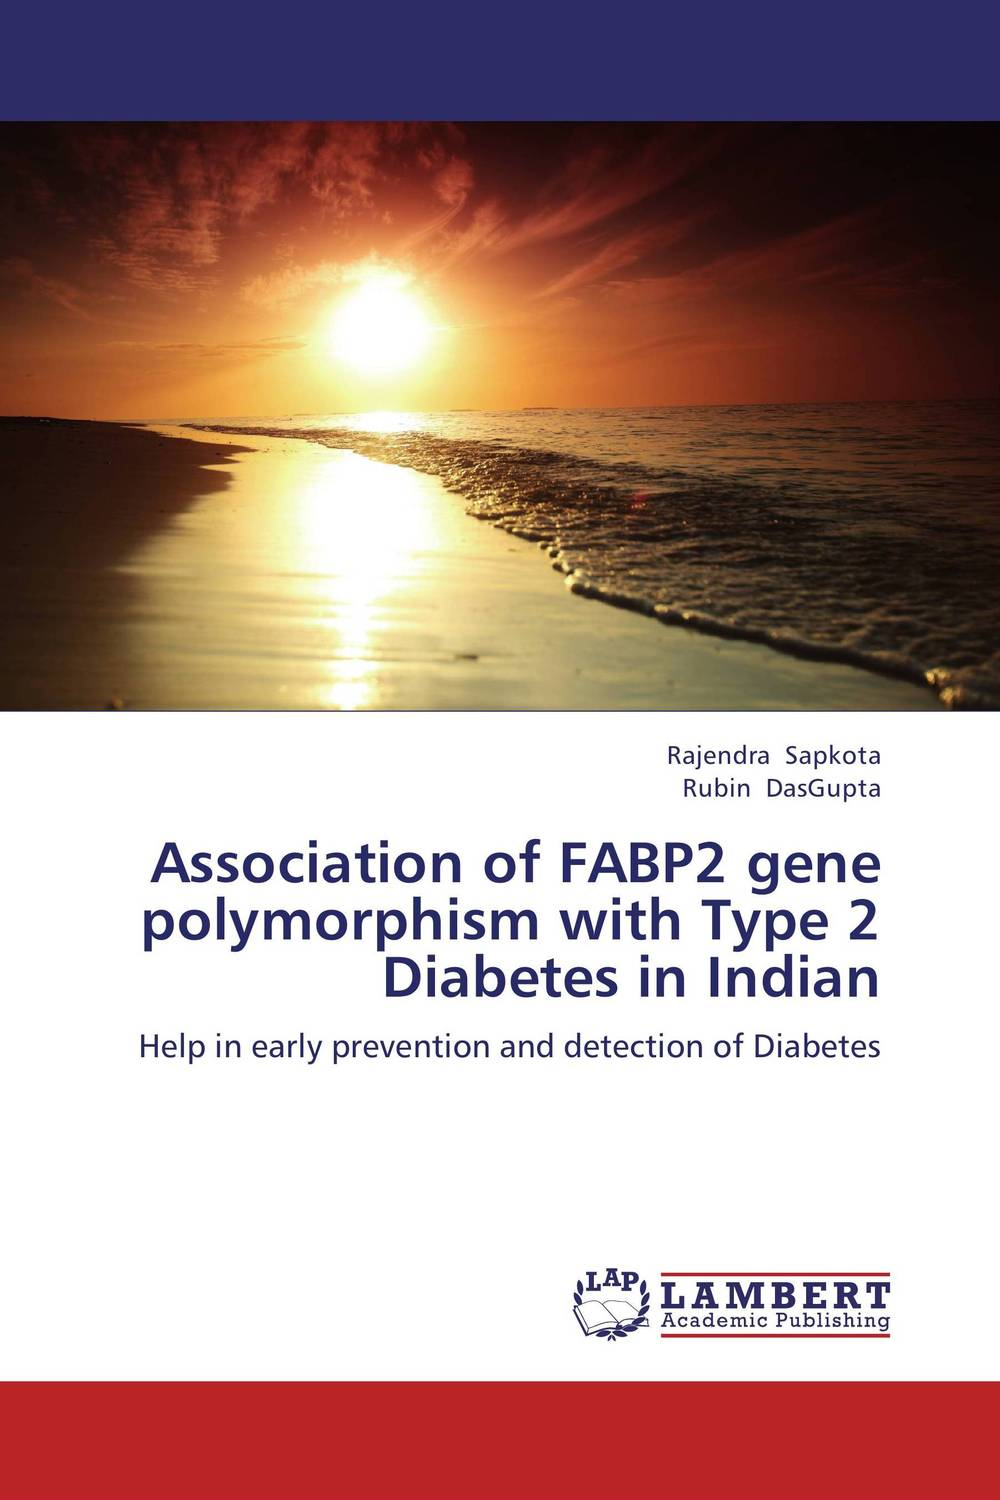 Association of FABP2 gene polymorphism with Type 2 Diabetes in Indian pparg polymorphisms and their association with type 2 diabetes